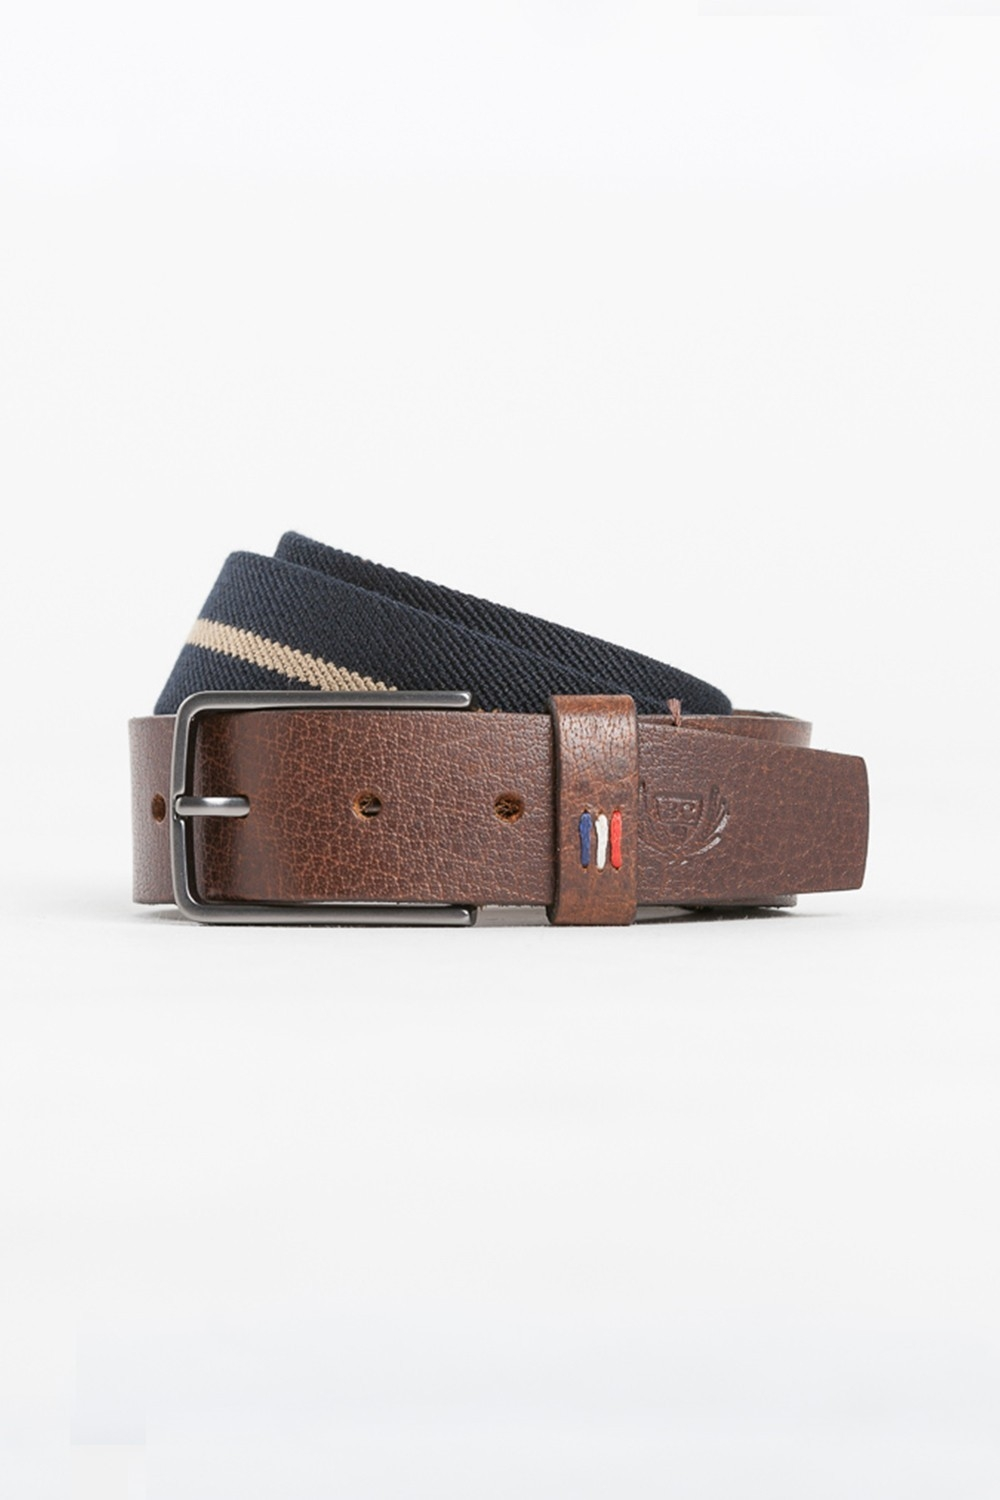 ceinture CORDOU marine benson and cherry